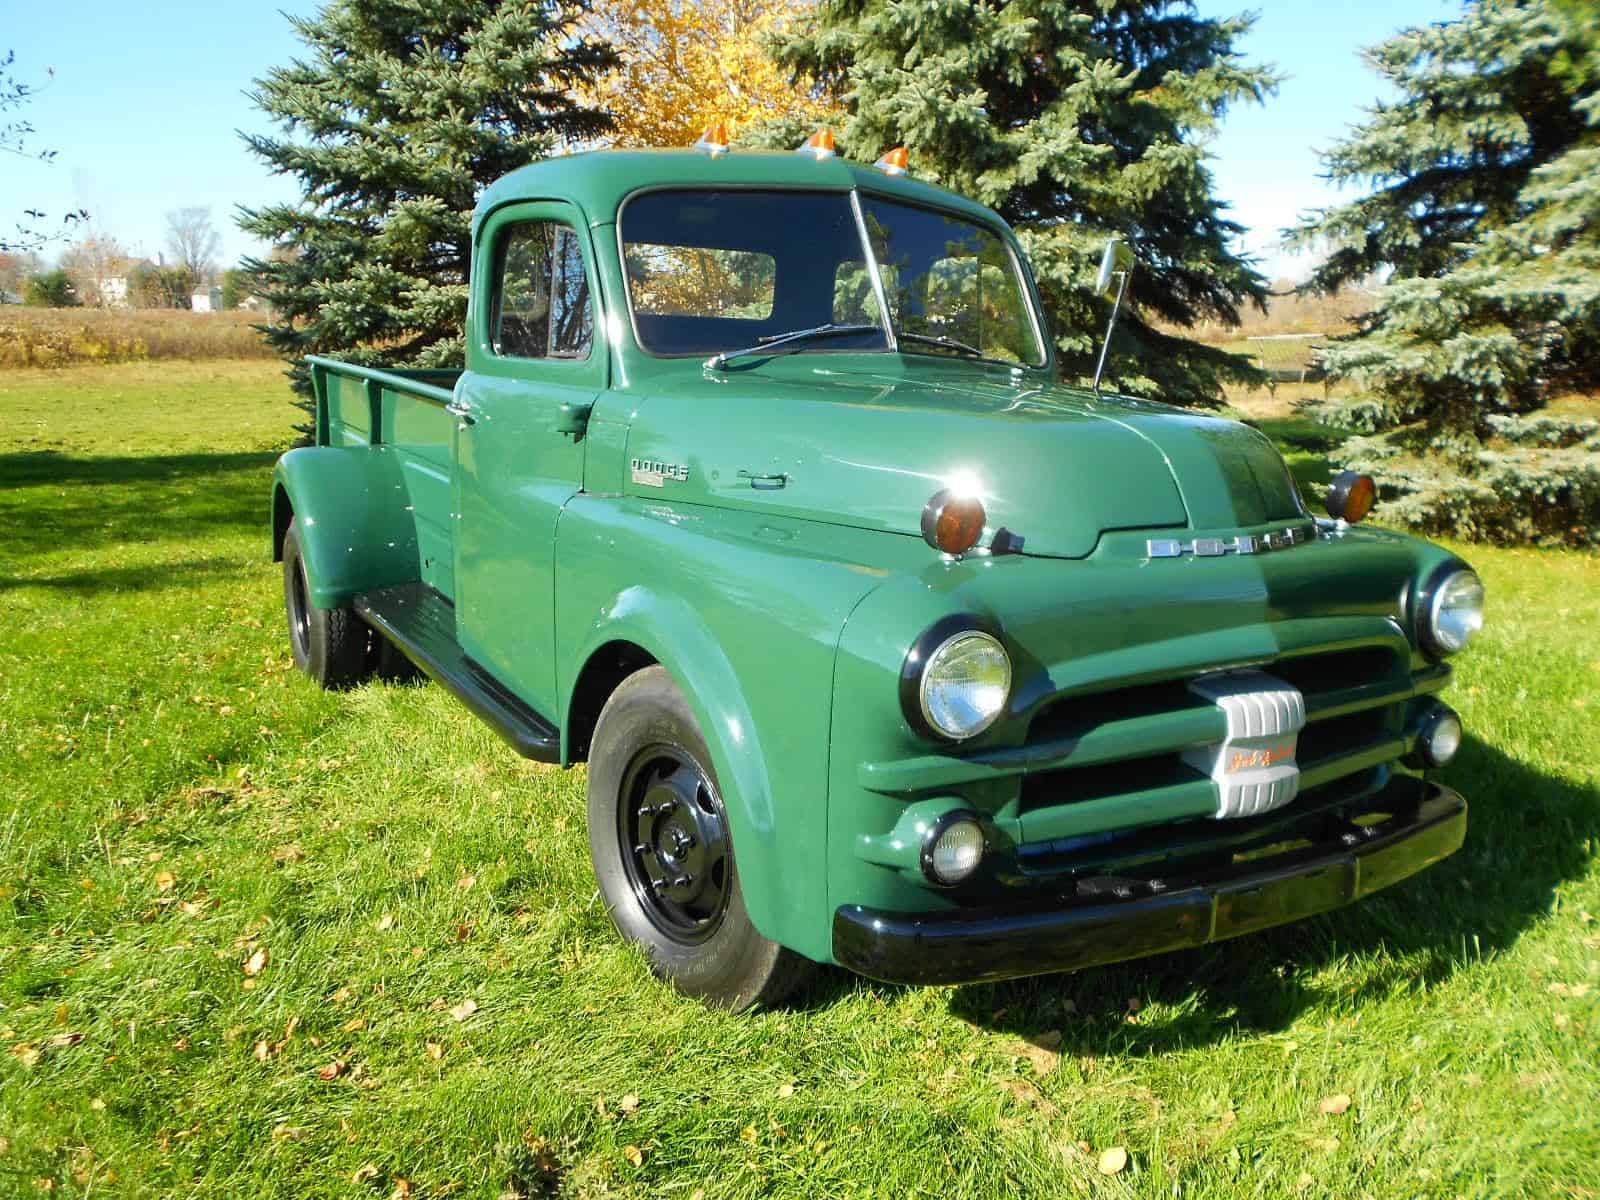 Our history of the Dodge dually includes the 1951 B-series Dodge dually